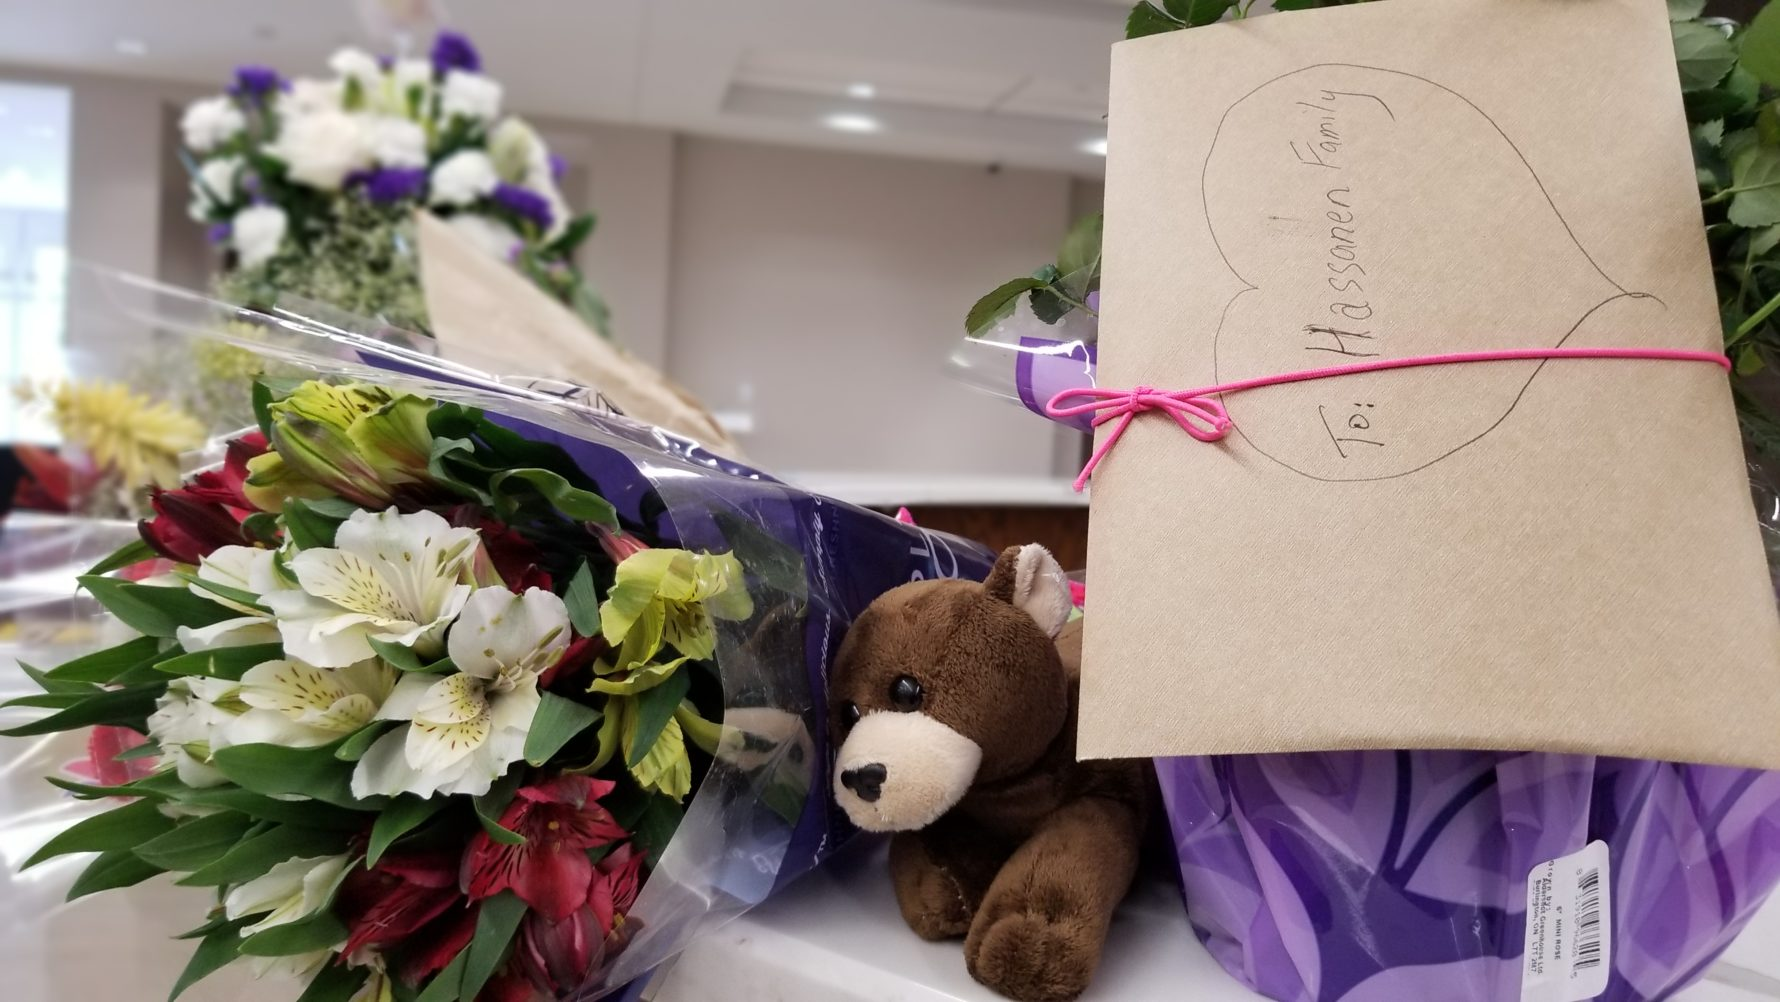 An awful kind of tragedy northern virginia muslims and neighbors all day monday well wishers piled the front desk of the all dulles area muslim society with flowers for nabra hassanens bereaved family izmirmasajfo